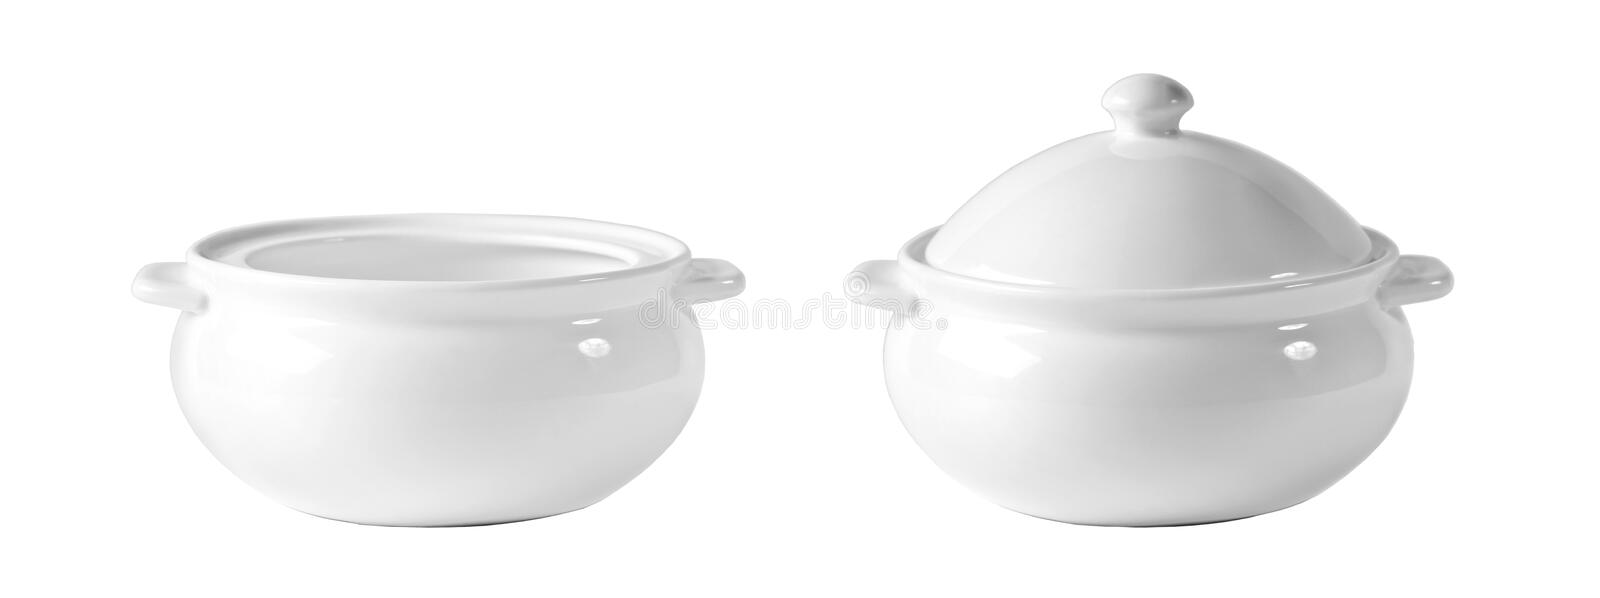 White bowl isolated royalty free stock images